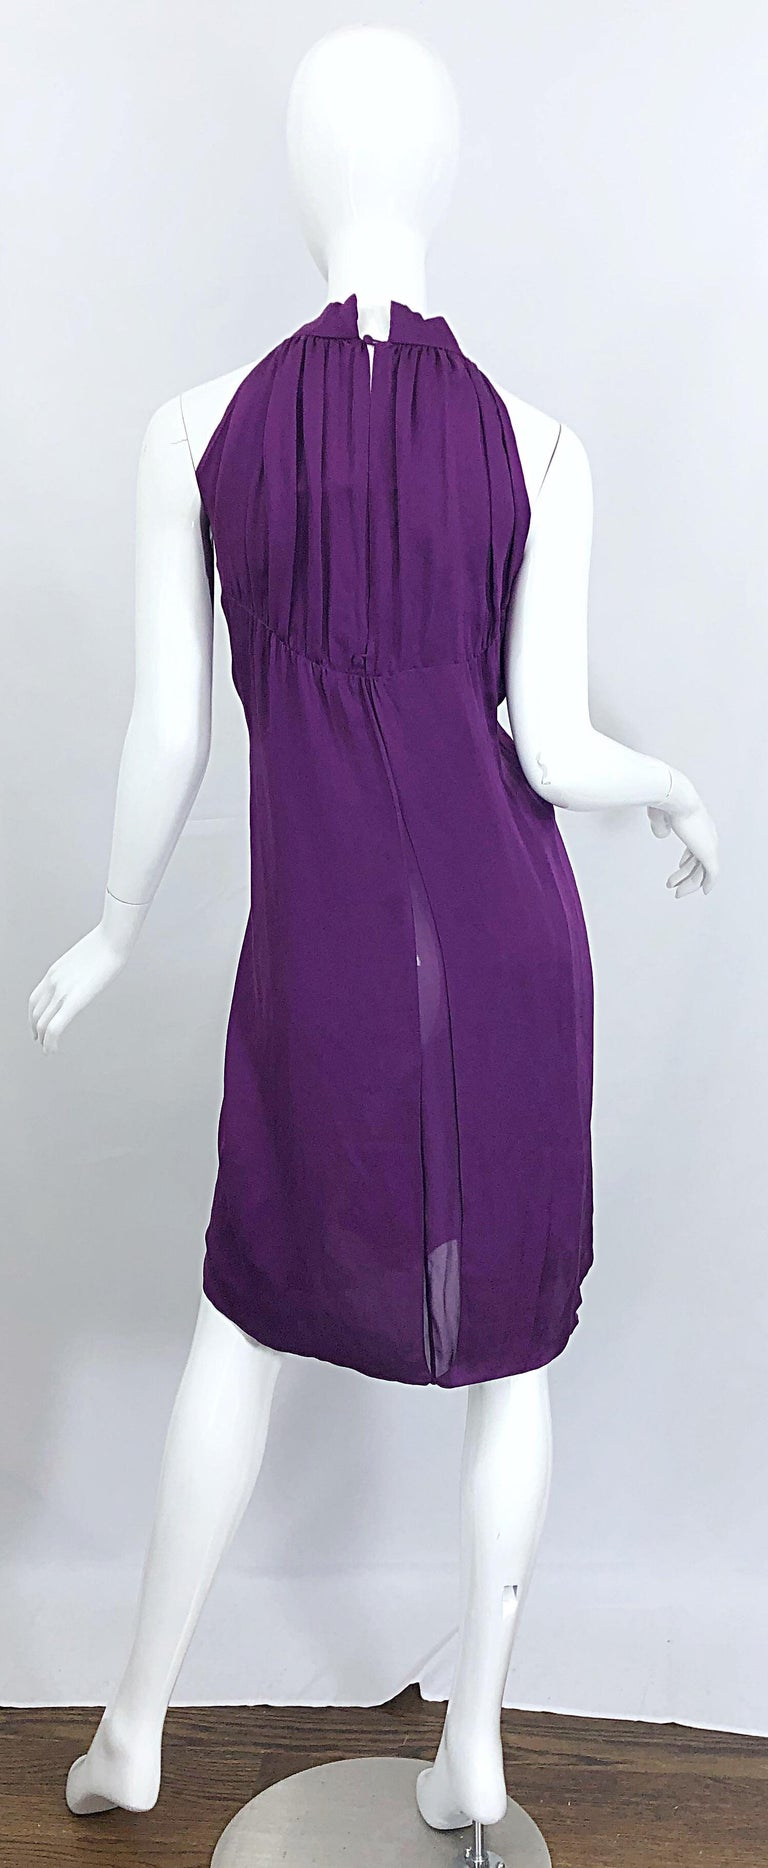 Yves Saint Laurent A / W 2007 Purple Silk Size 40 / US 8 YSL Rive Gauche Dress In Excellent Condition For Sale In Chicago, IL